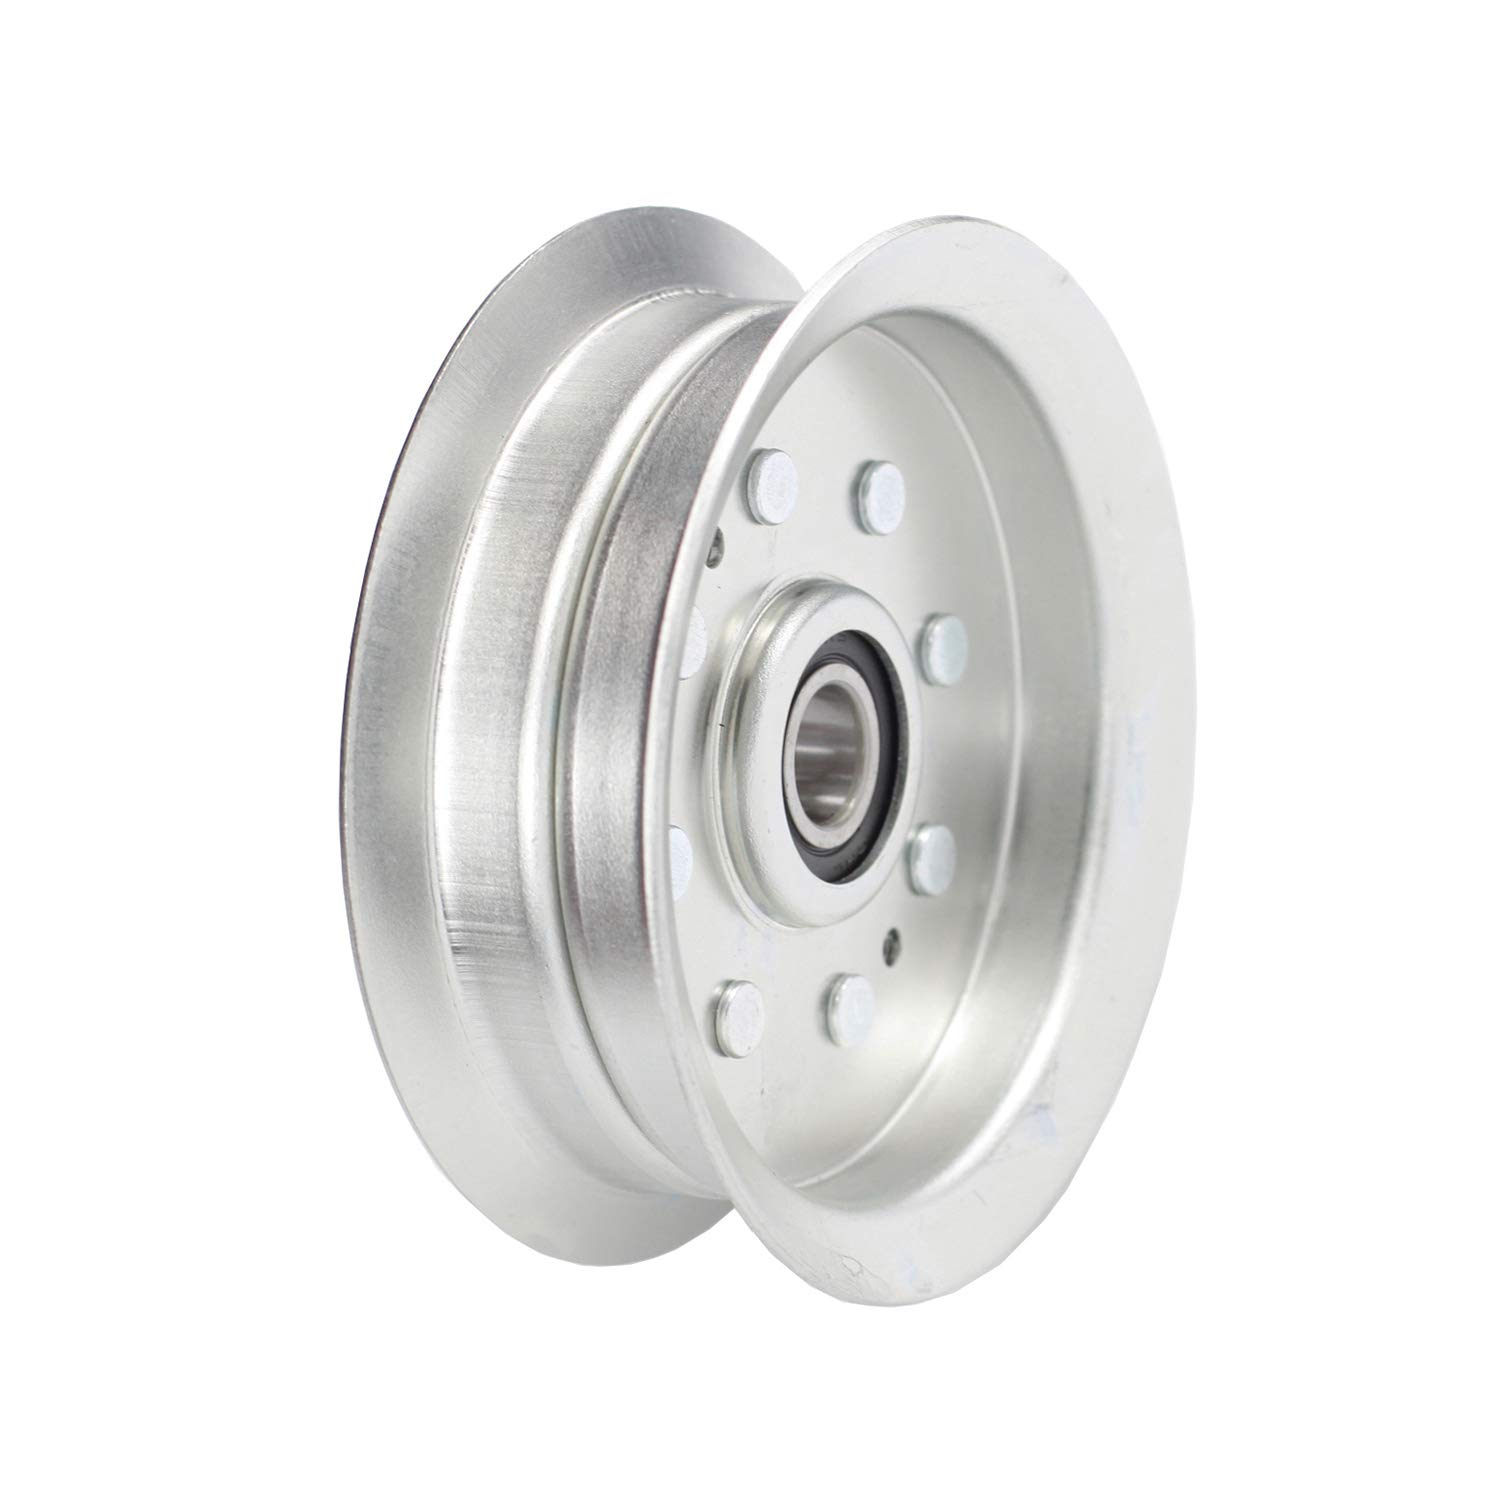 Outdoors & Spares Replaces 280-242 Flat Idler Pulley GY20110,GY20629,GY20639